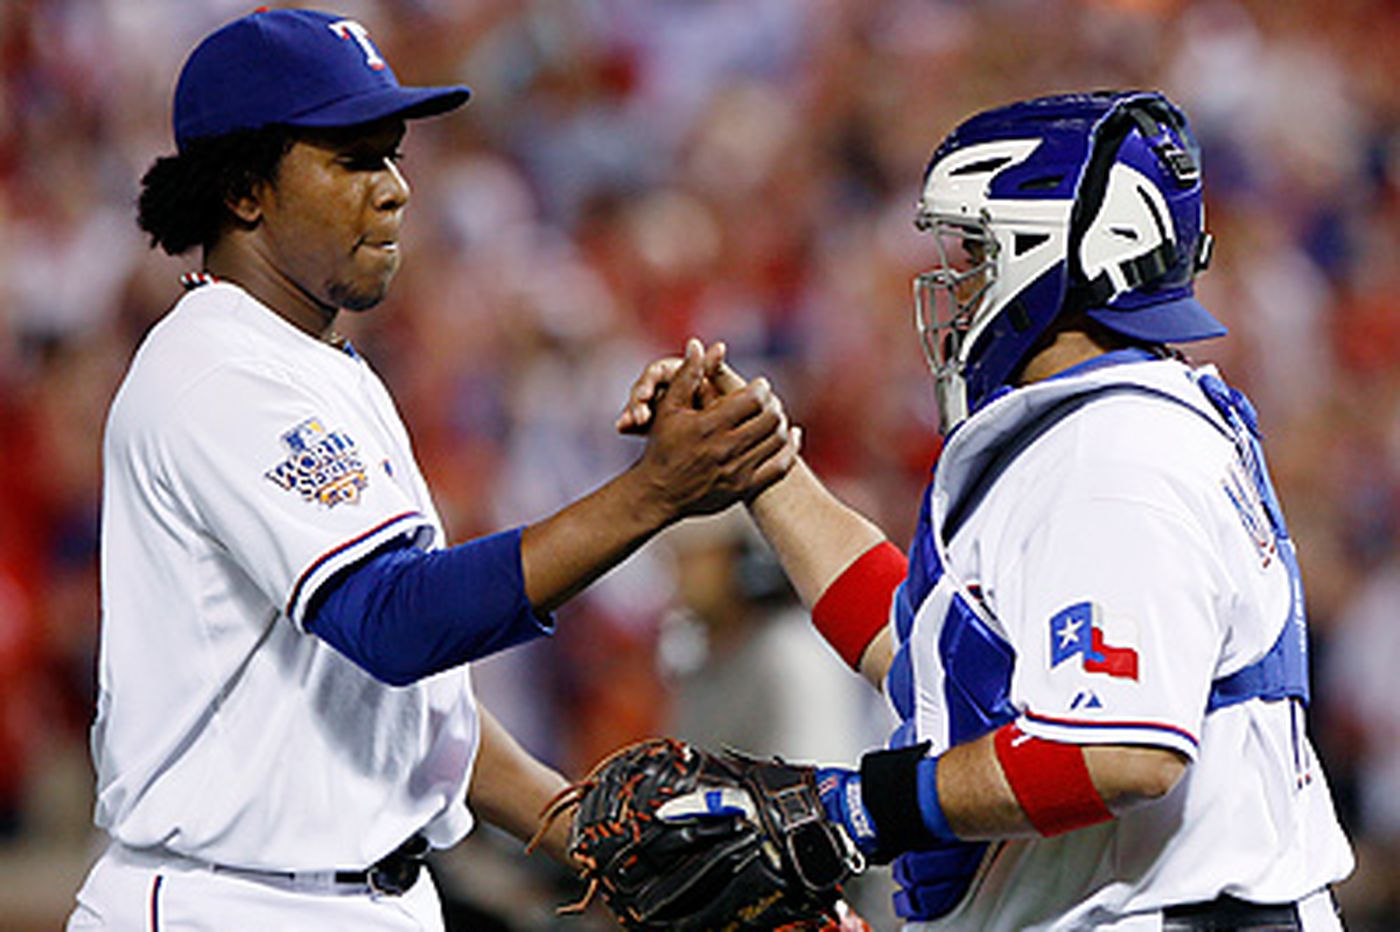 Burrell's woes continue in Giants' Game 3 loss